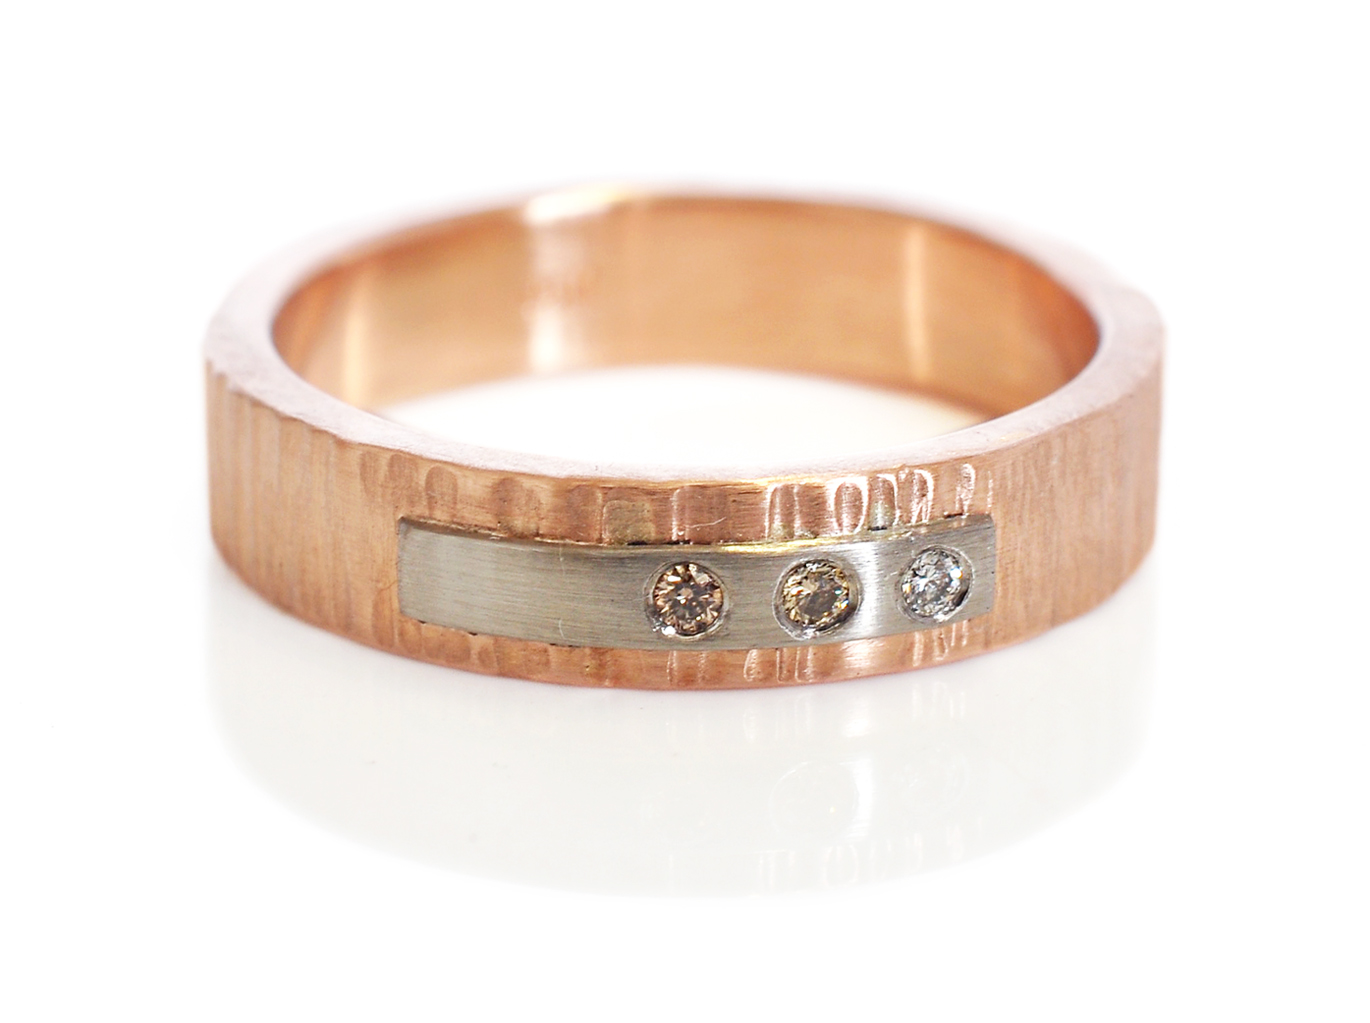 For Terese a 4mm wide 14k red gold band with a linear hammered finish, a 500 palladium strip and 3 flush-set diamonds in shades of champagne and white.